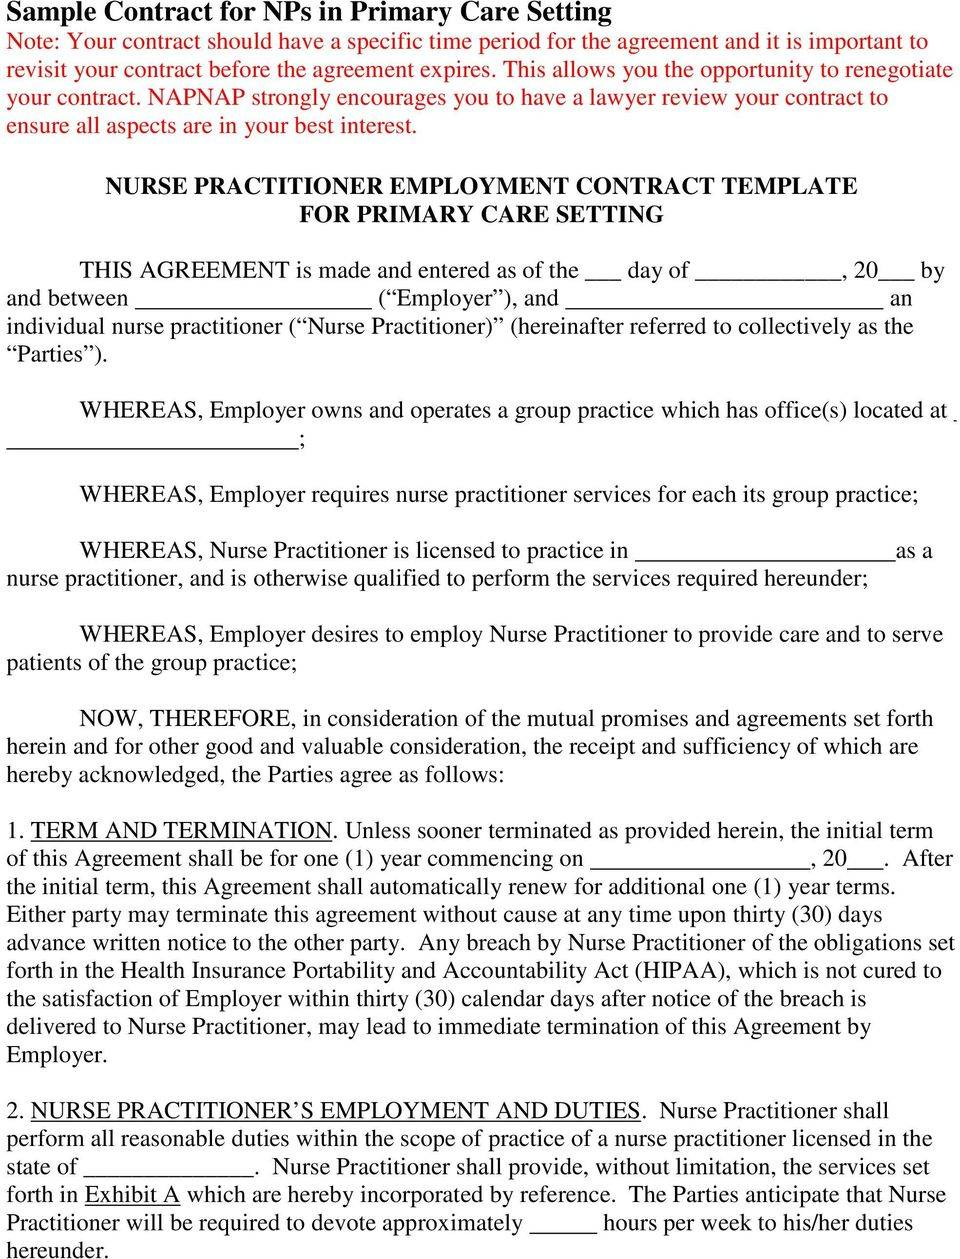 Nurse Practitioner Contract Template